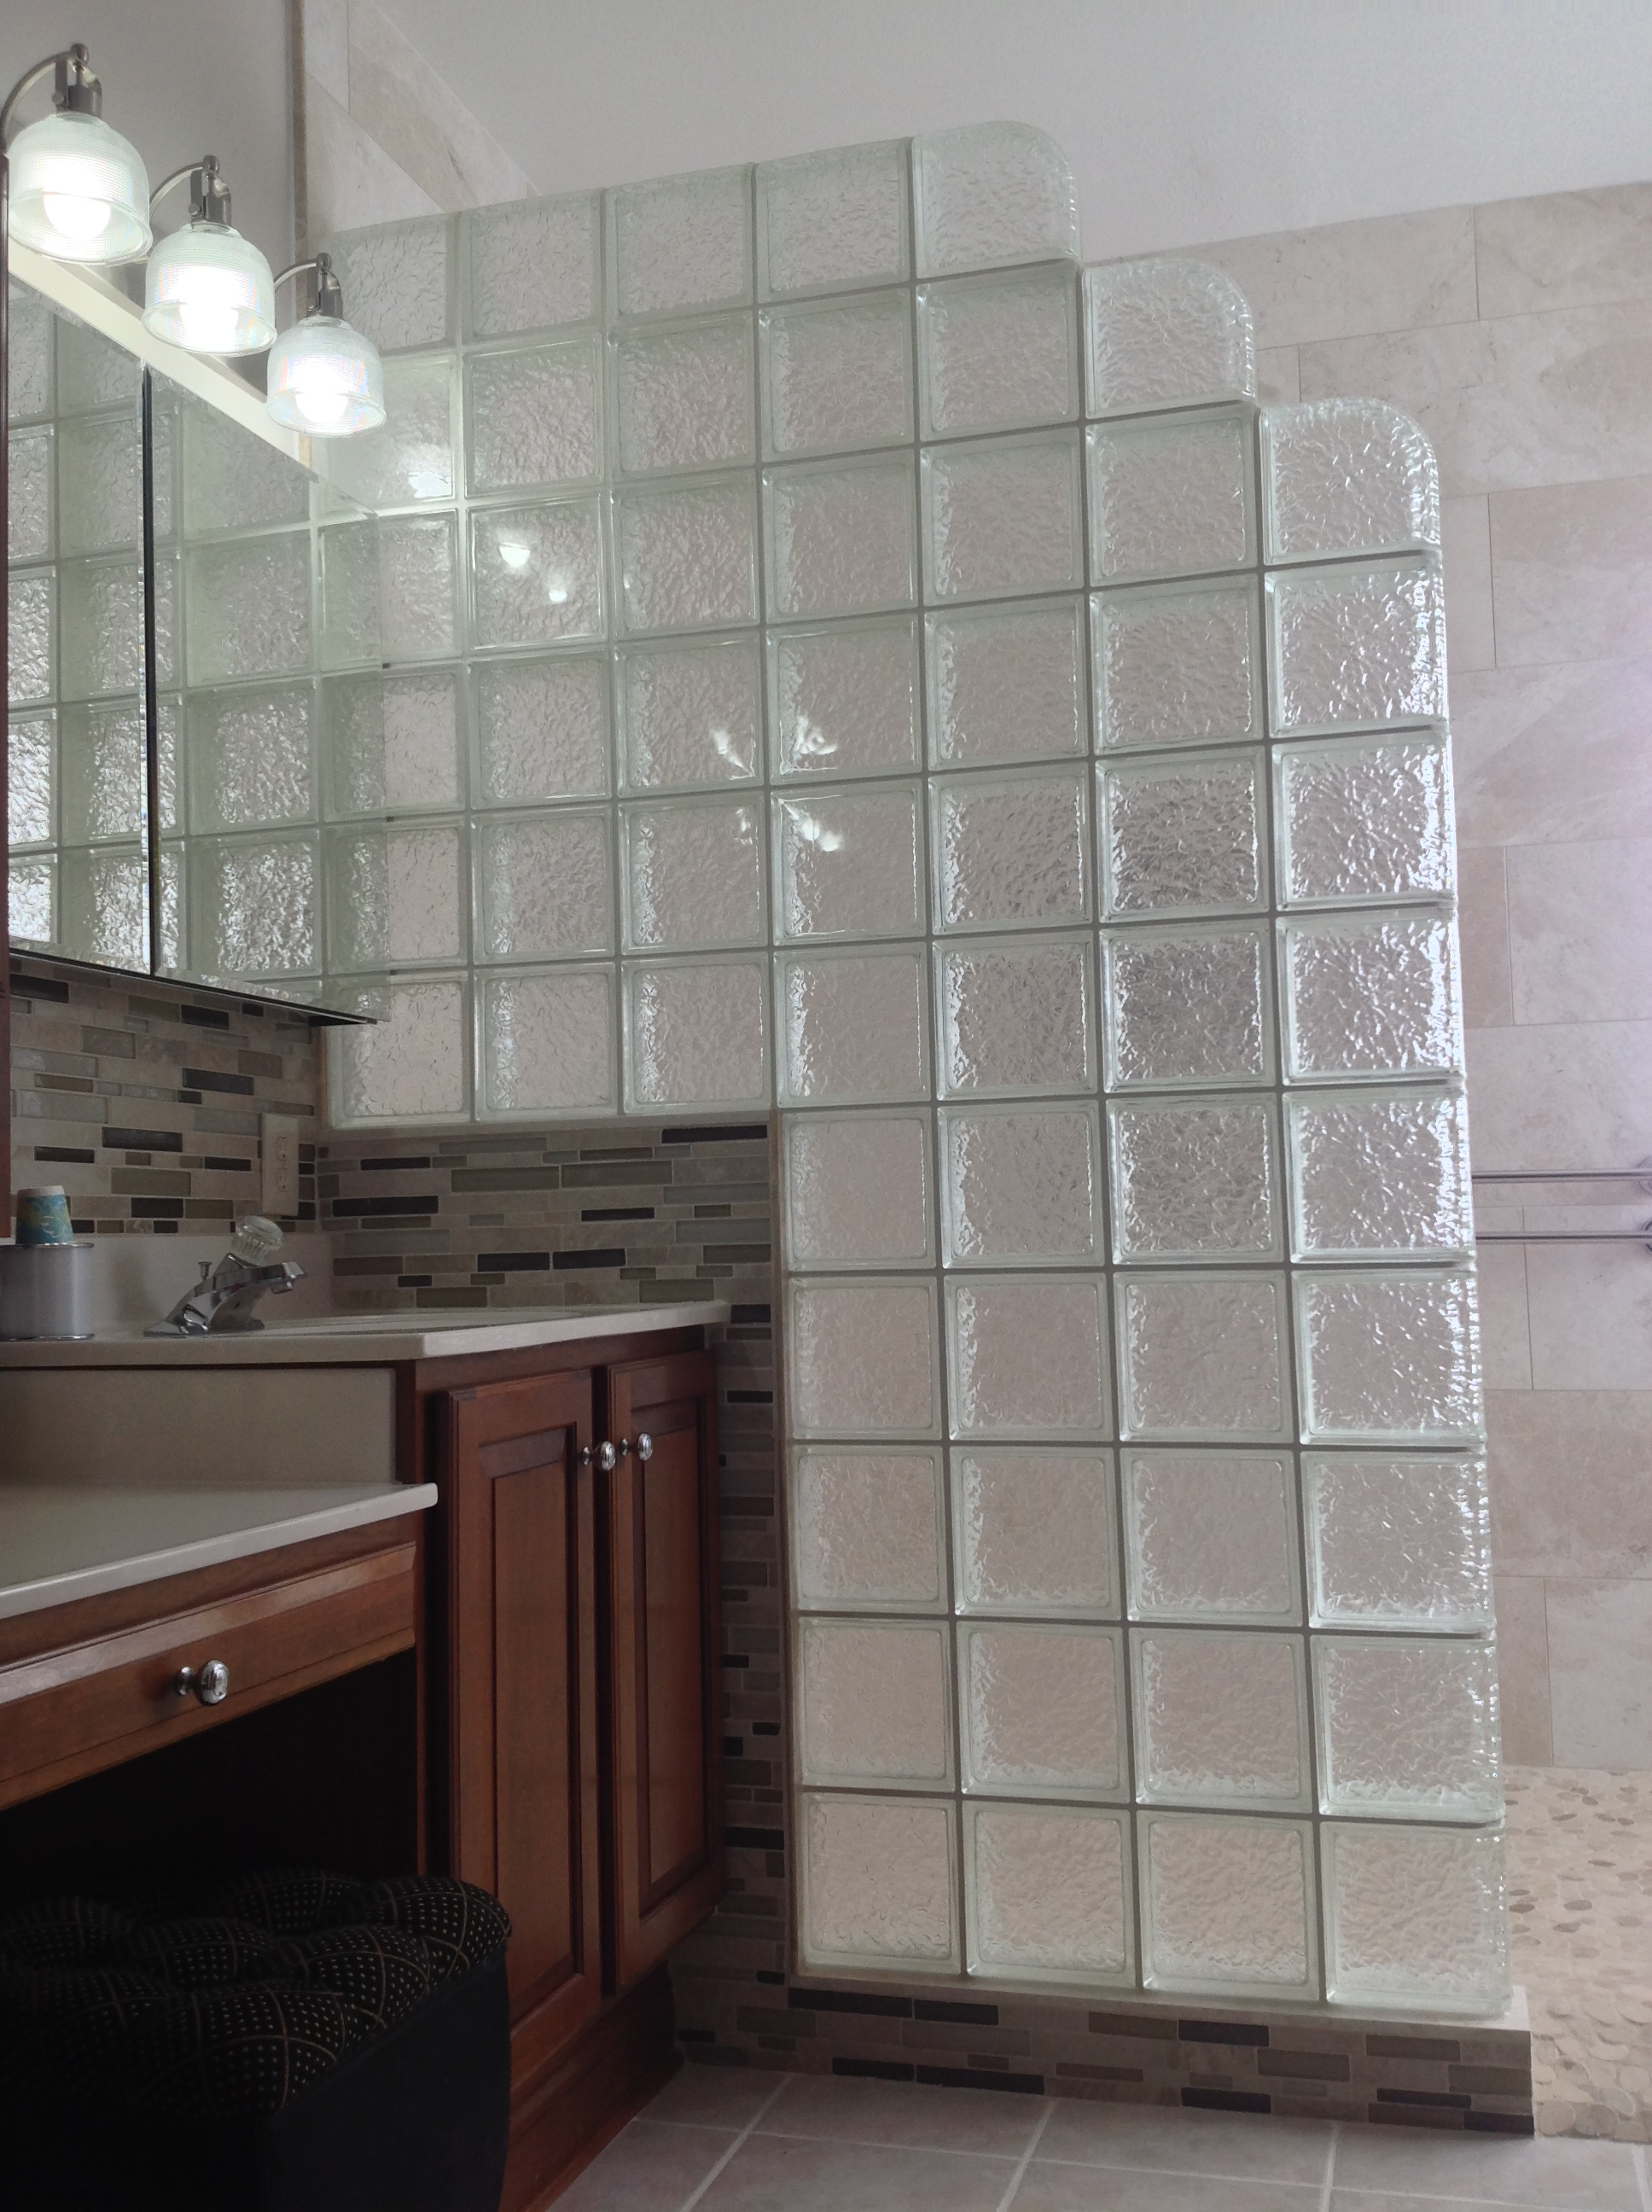 Ordinaire Curbless Icescapes Glass Block Shower With A Step Down Design